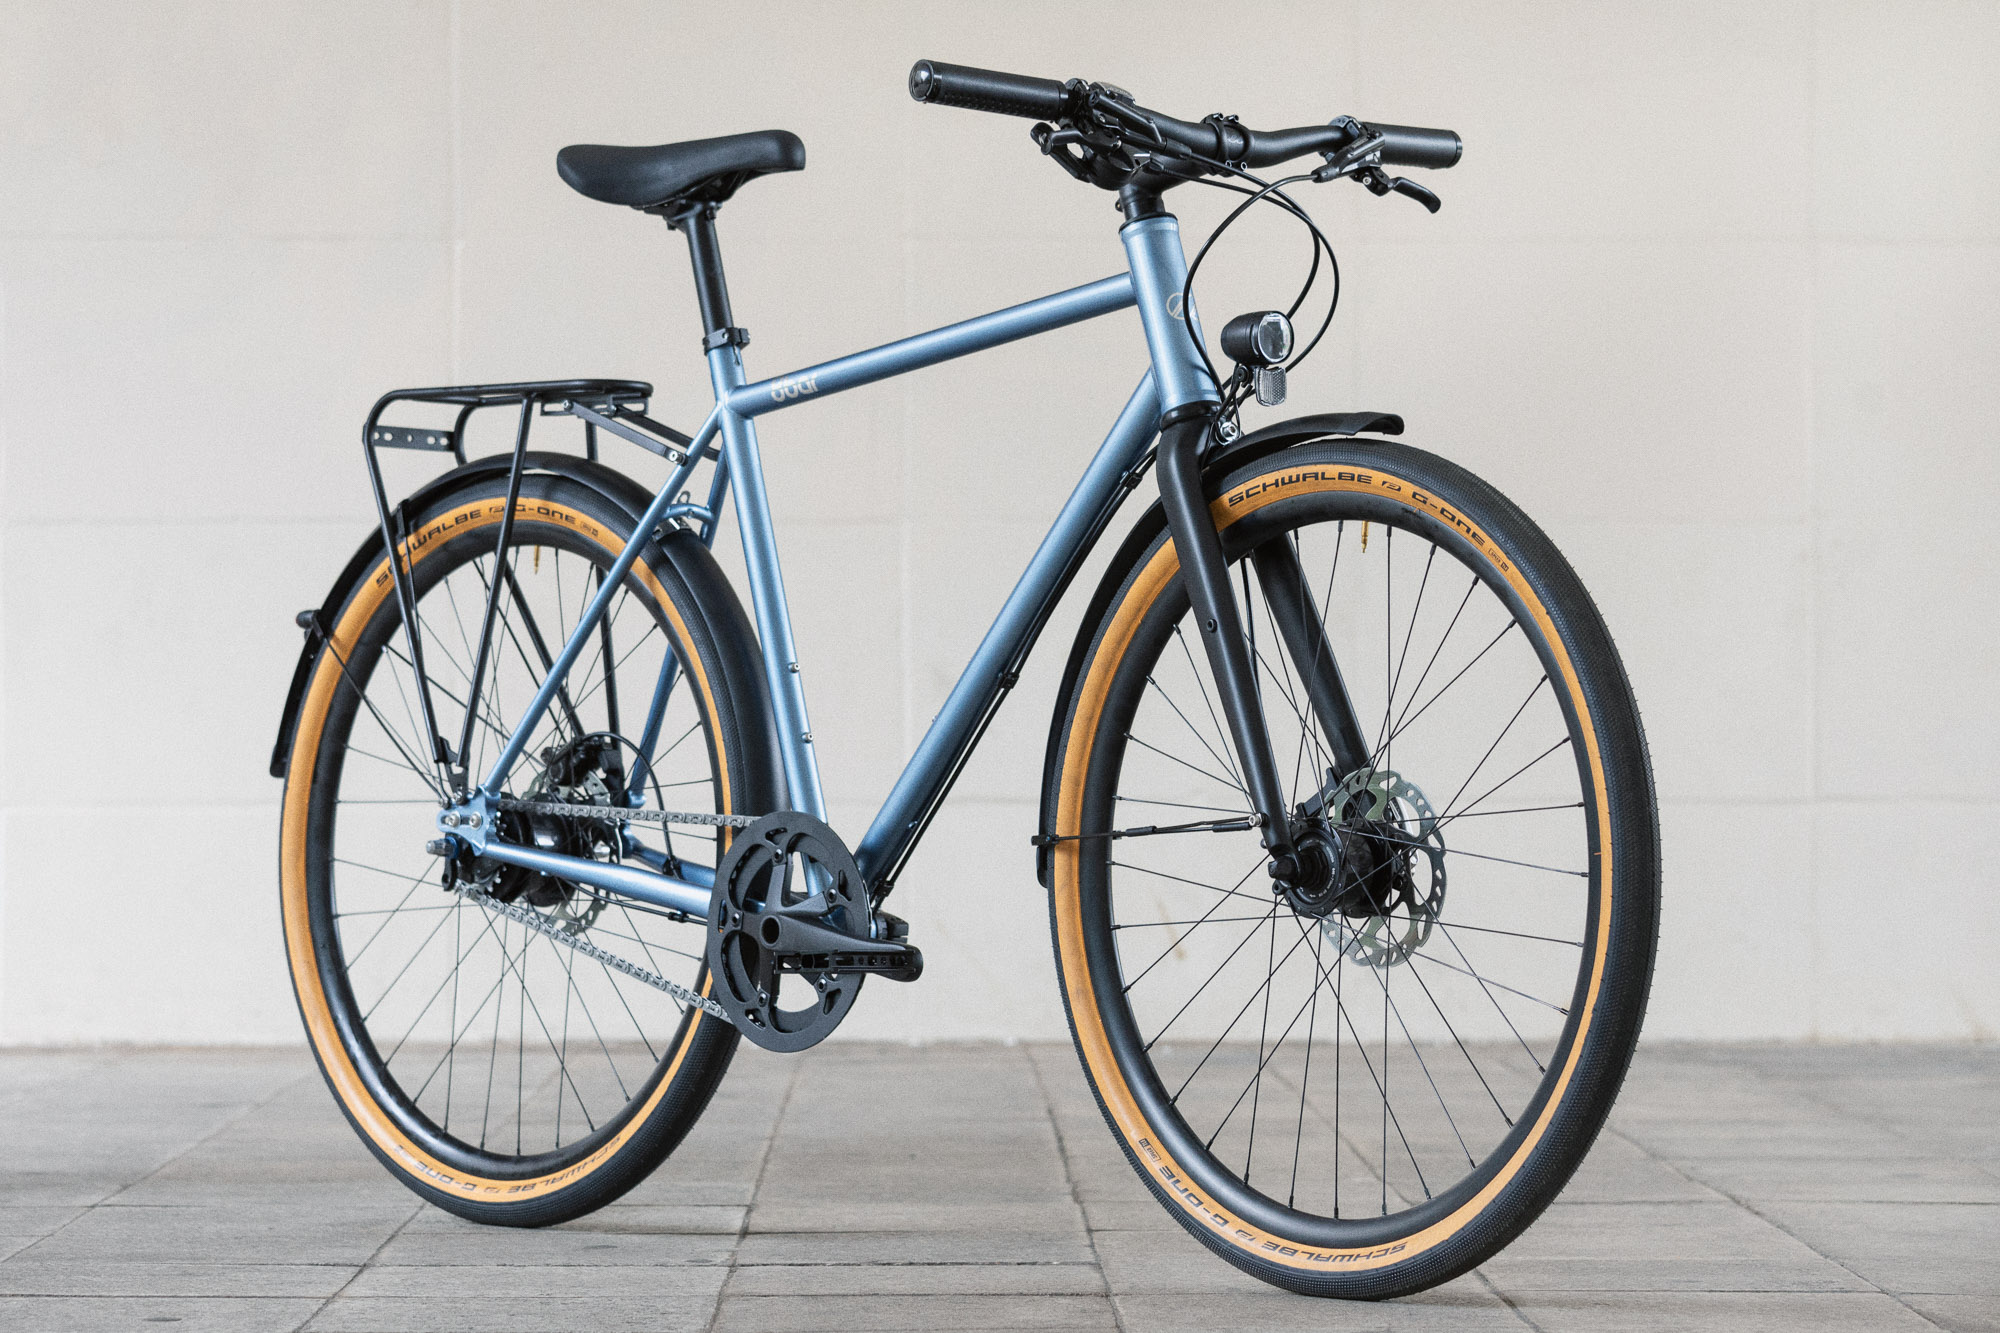 8bar-complete-bike-mitte-steel-blue-urban-lr-2